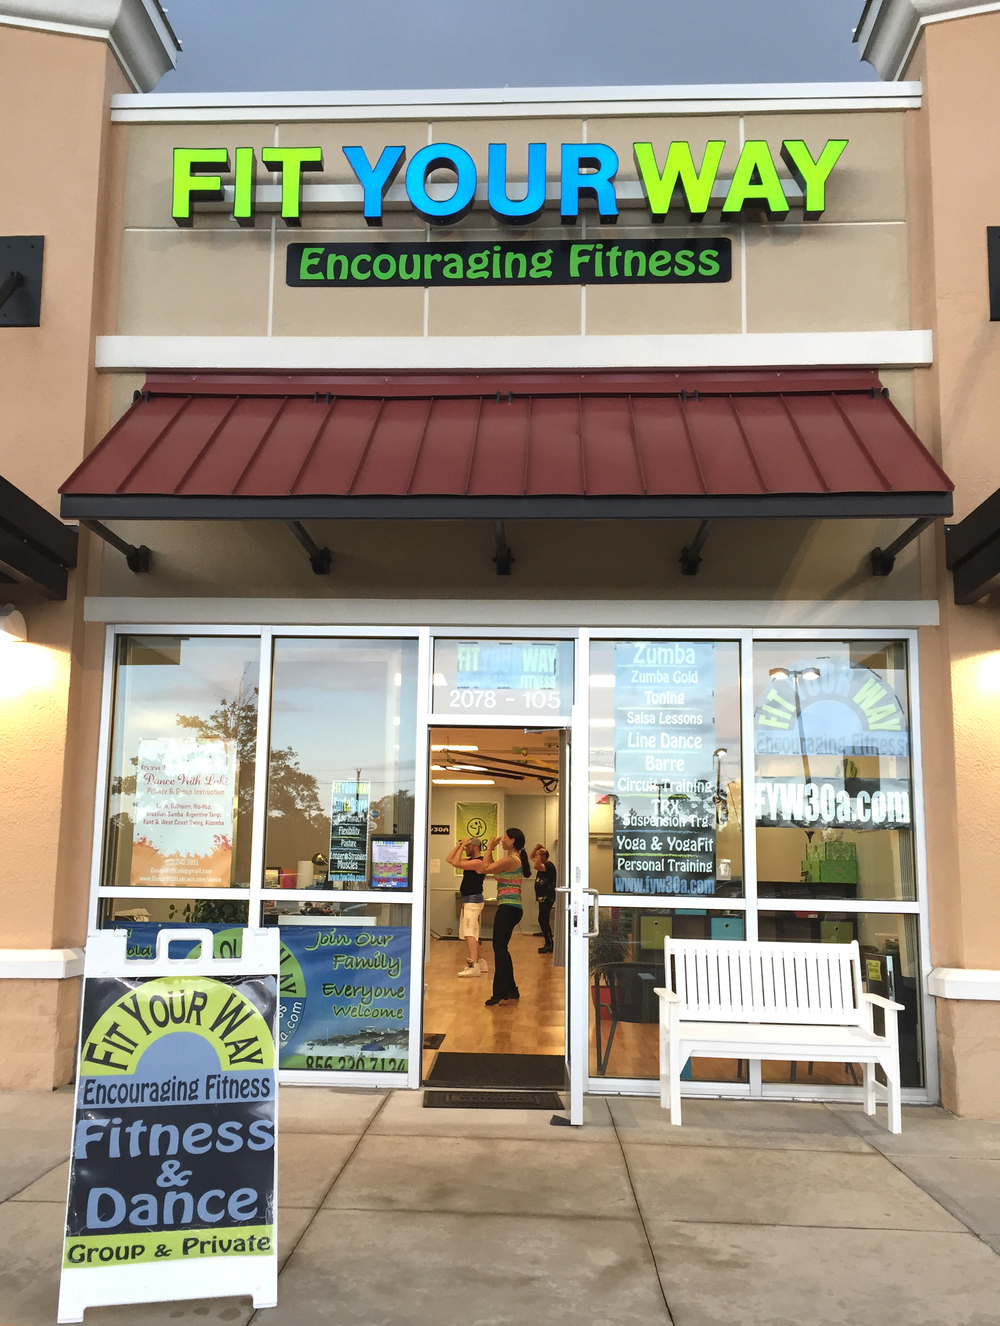 Come see our NEW Location in the South Walton Publix Plaza on Rt. 98 in beautiful Santa Rosa Beach, FL.